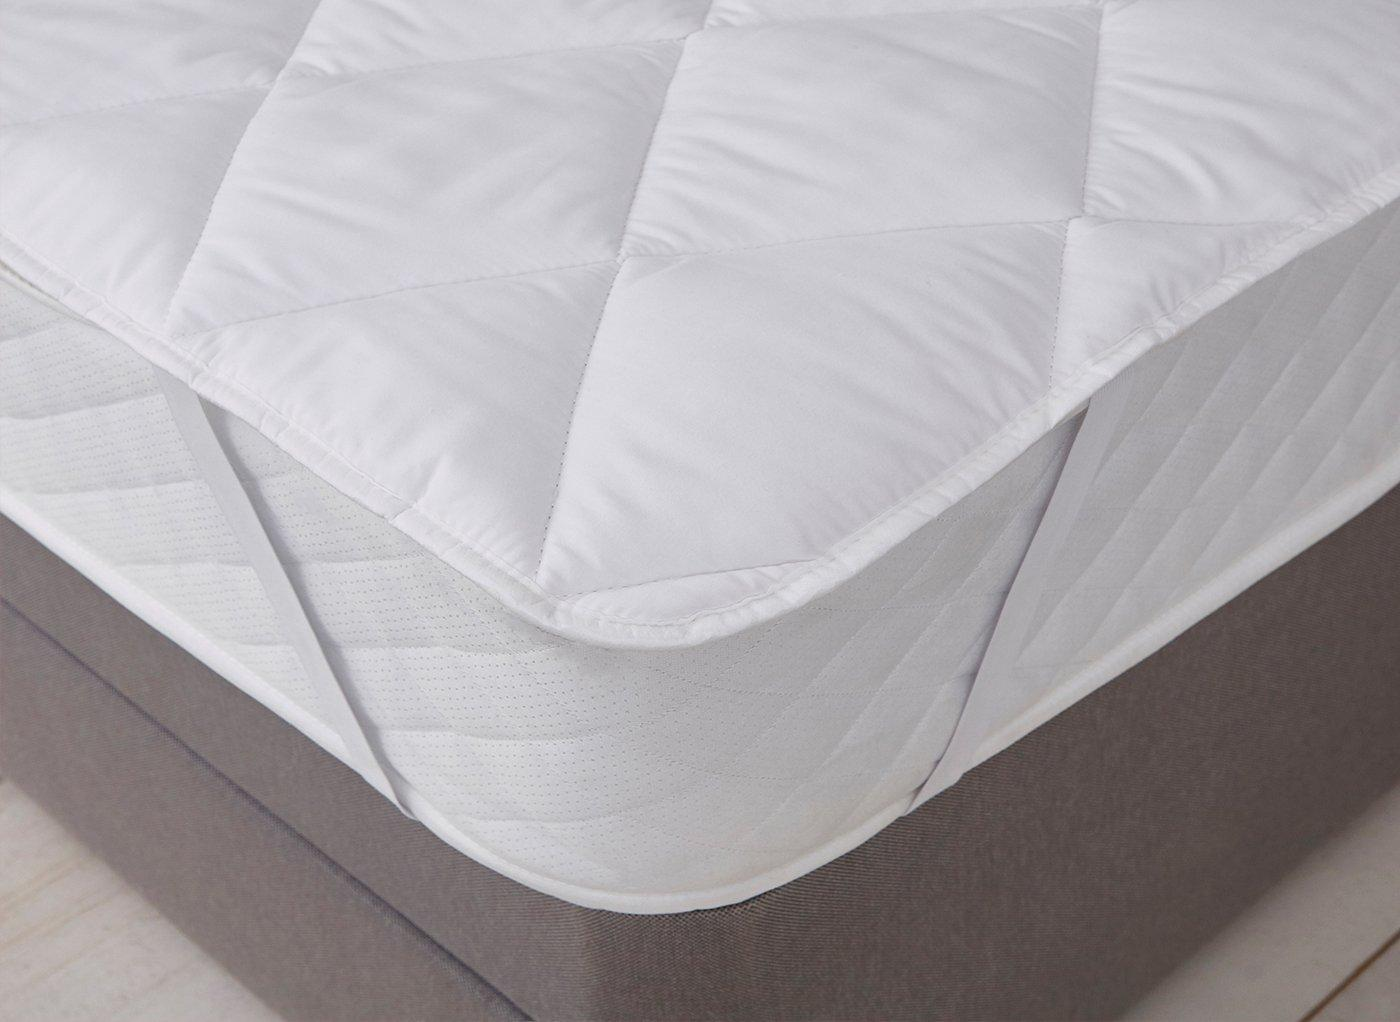 silentnight-ultrabounce-mattress-protector